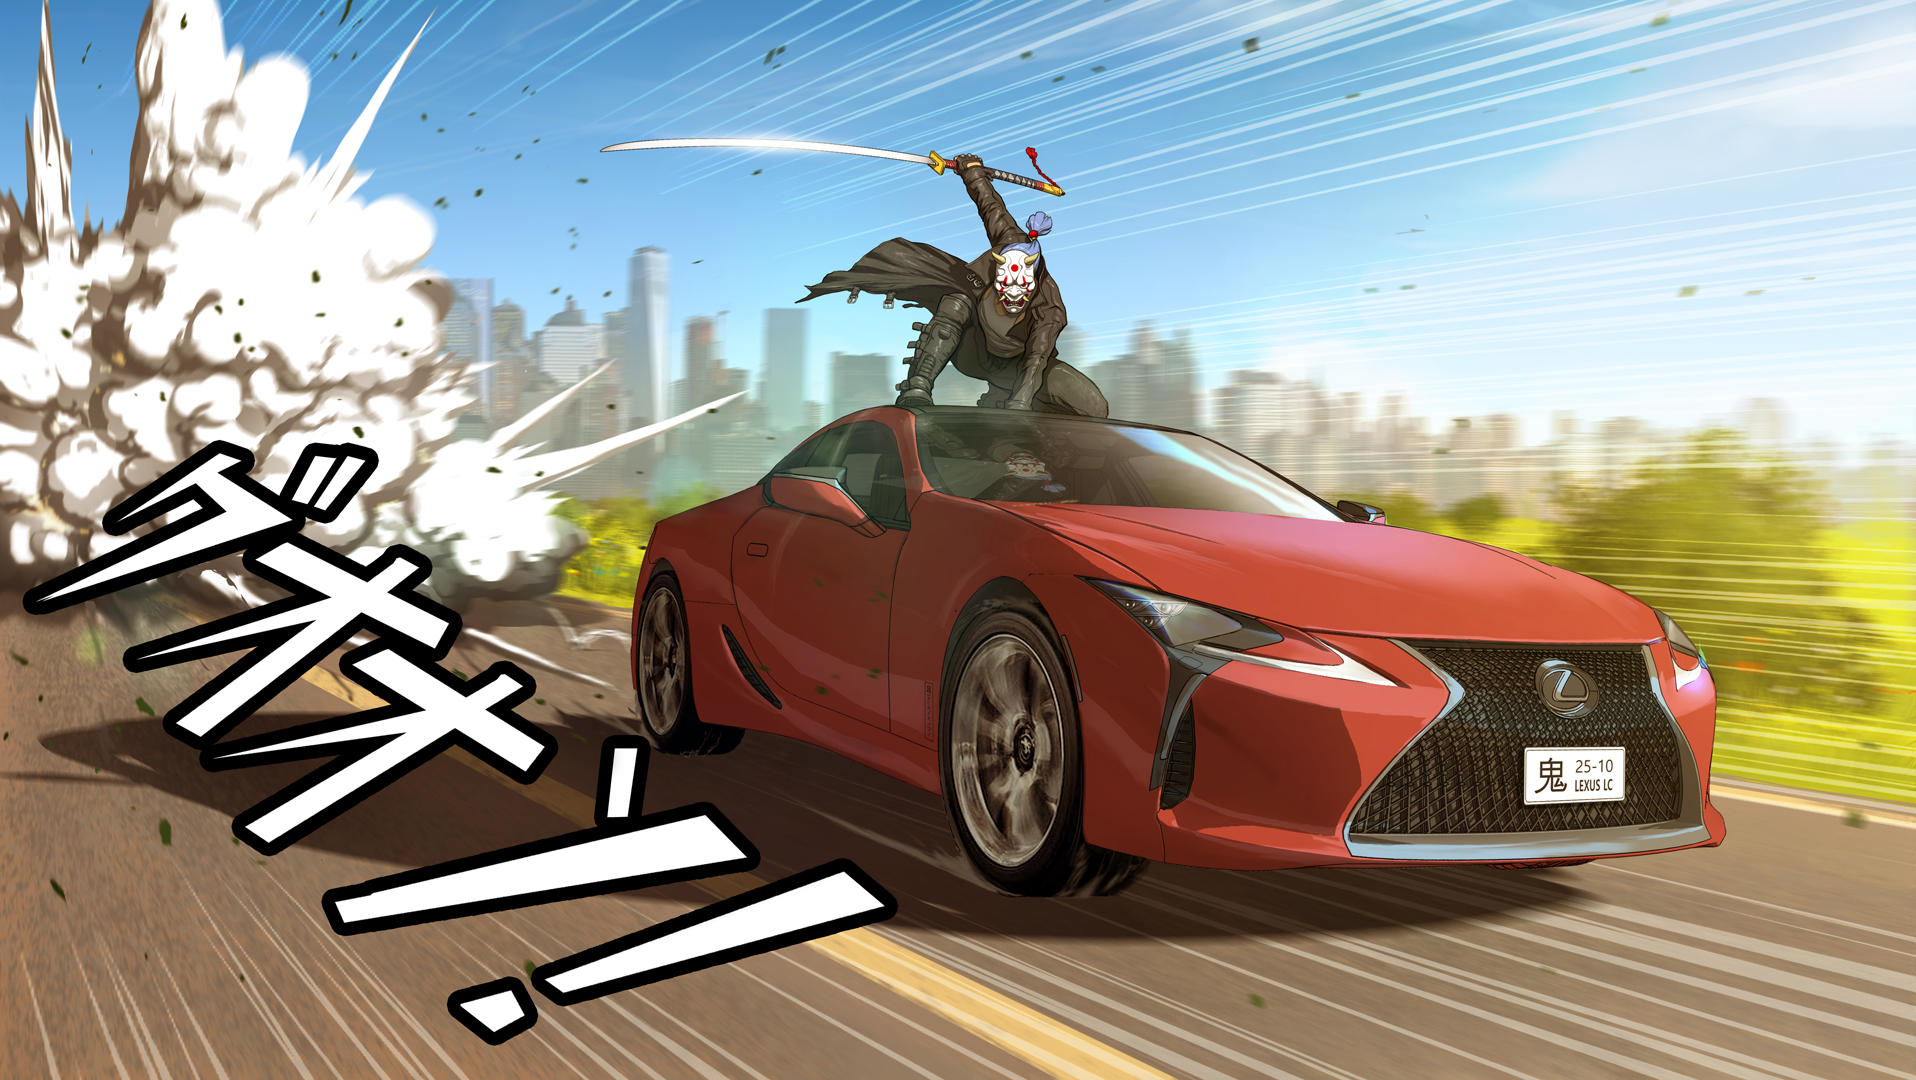 Artists Capture The Spirit Of Lexus In New Original Manga Artworks Hero image